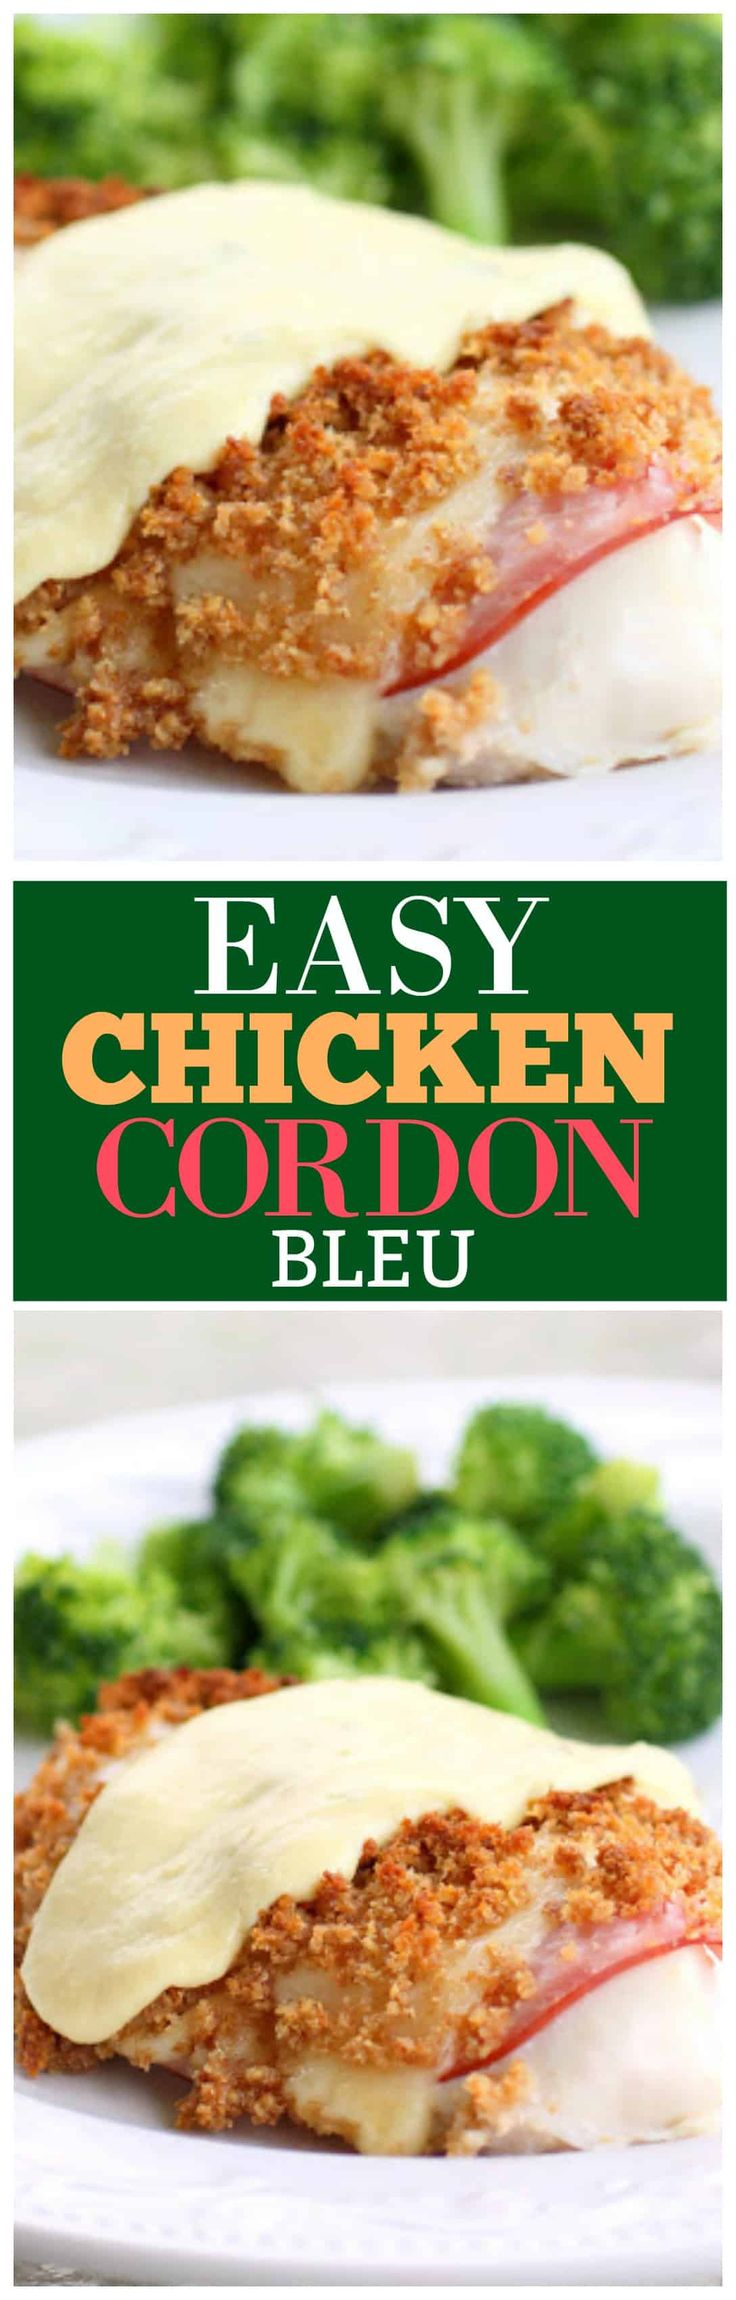 This Easy Chicken Cordon Bleu is one of those go-to chicken recipes that you will keep going back to. It's a great casserole for company and a chicken dinner that everyone will love.